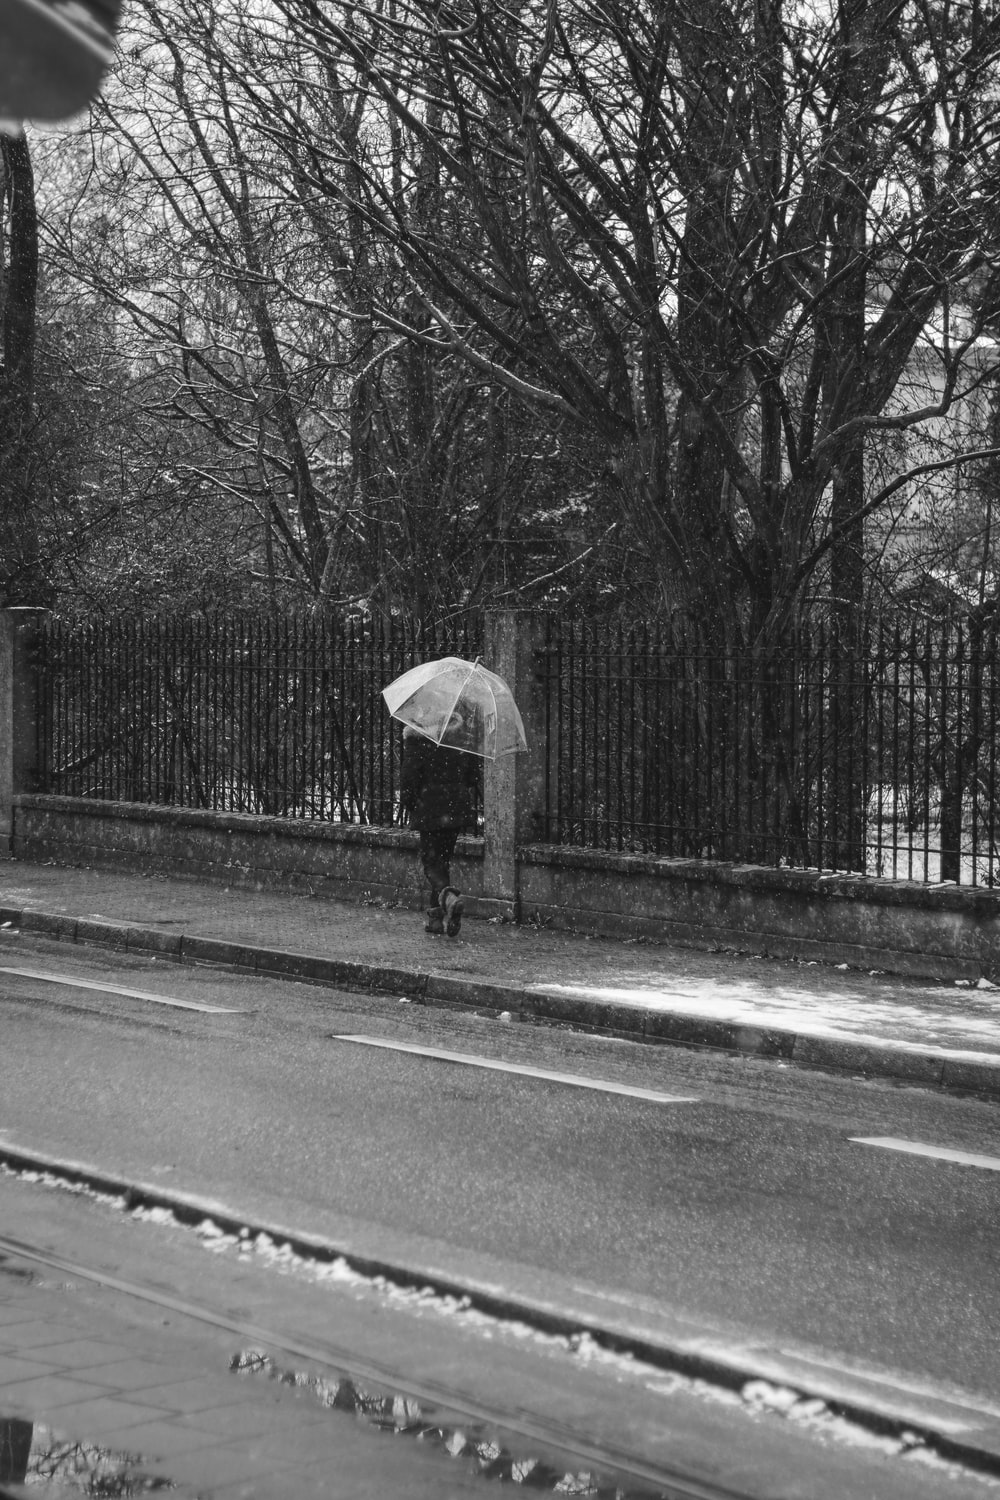 grayscale photo of person holding umbrella walking on sidewalk